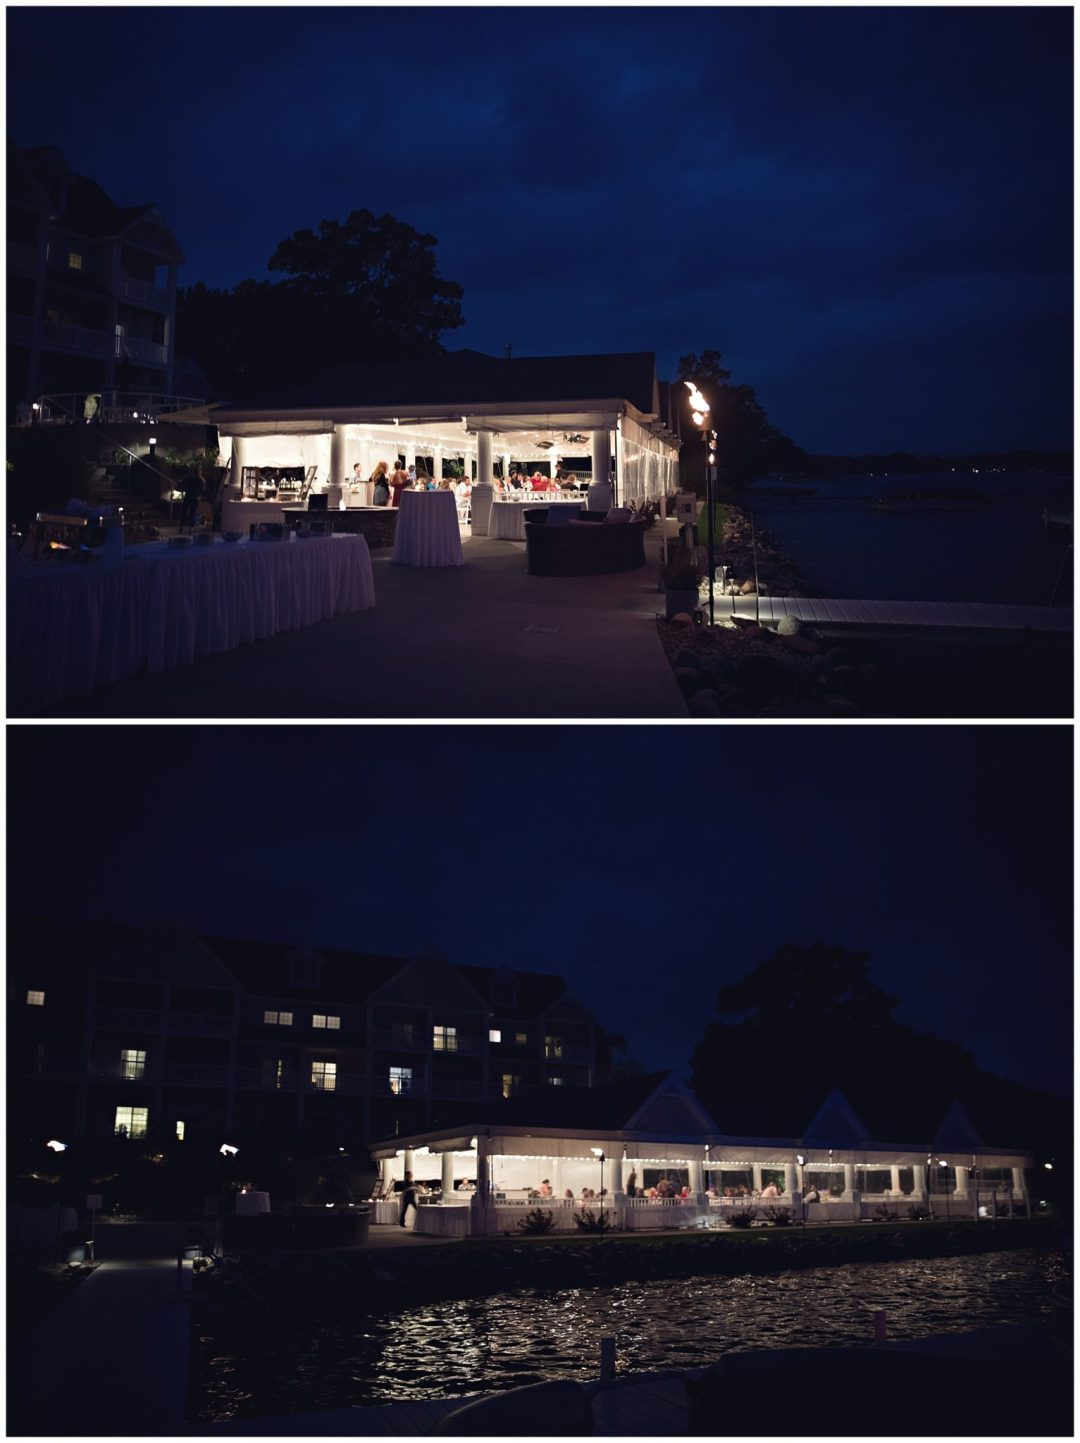 Bay Pointe Inn on Gun Lake at night time photographed by Gregersen Photography